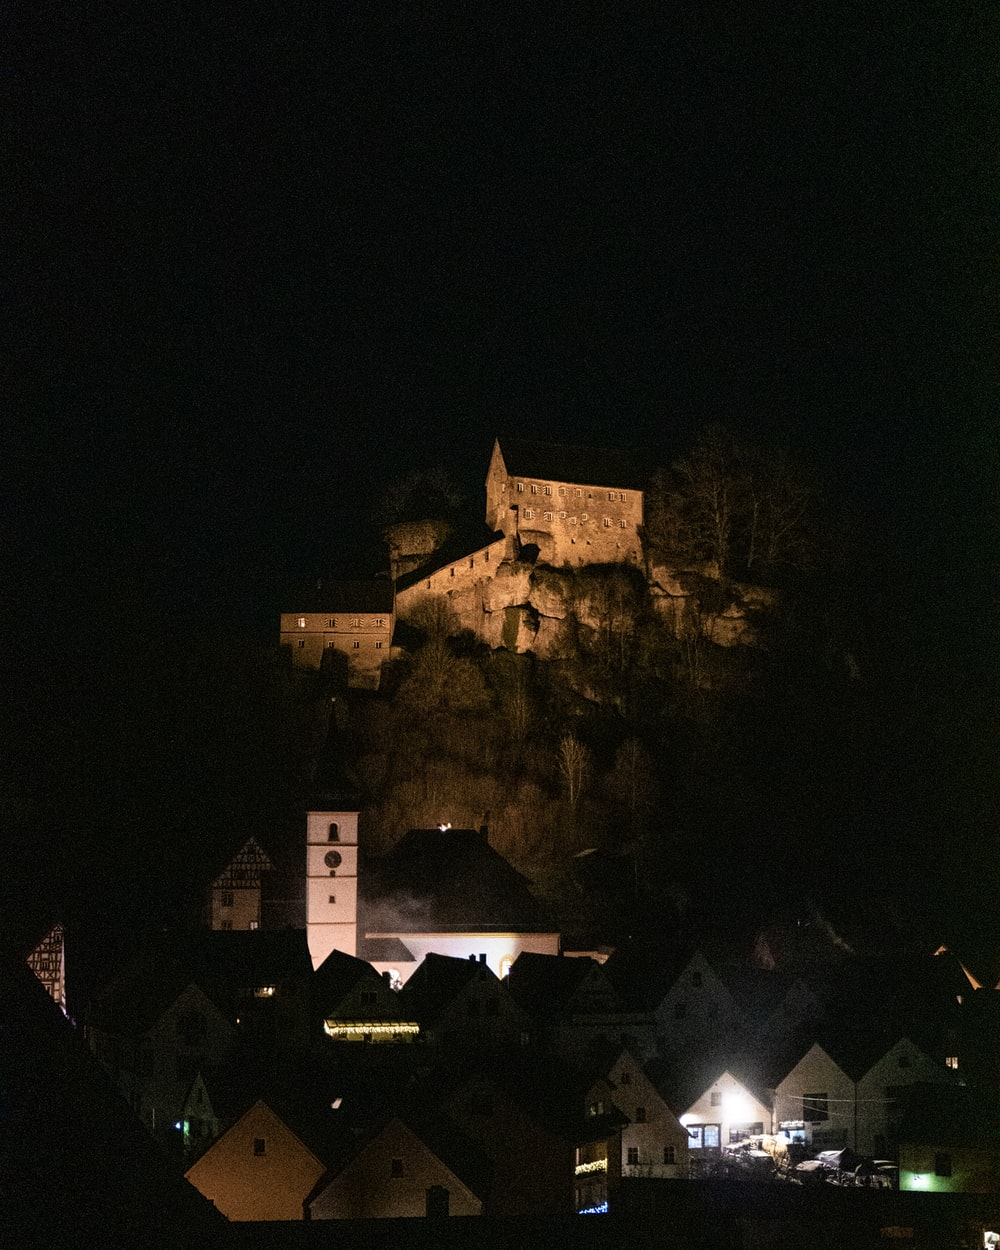 castle surrounded with houses view at night